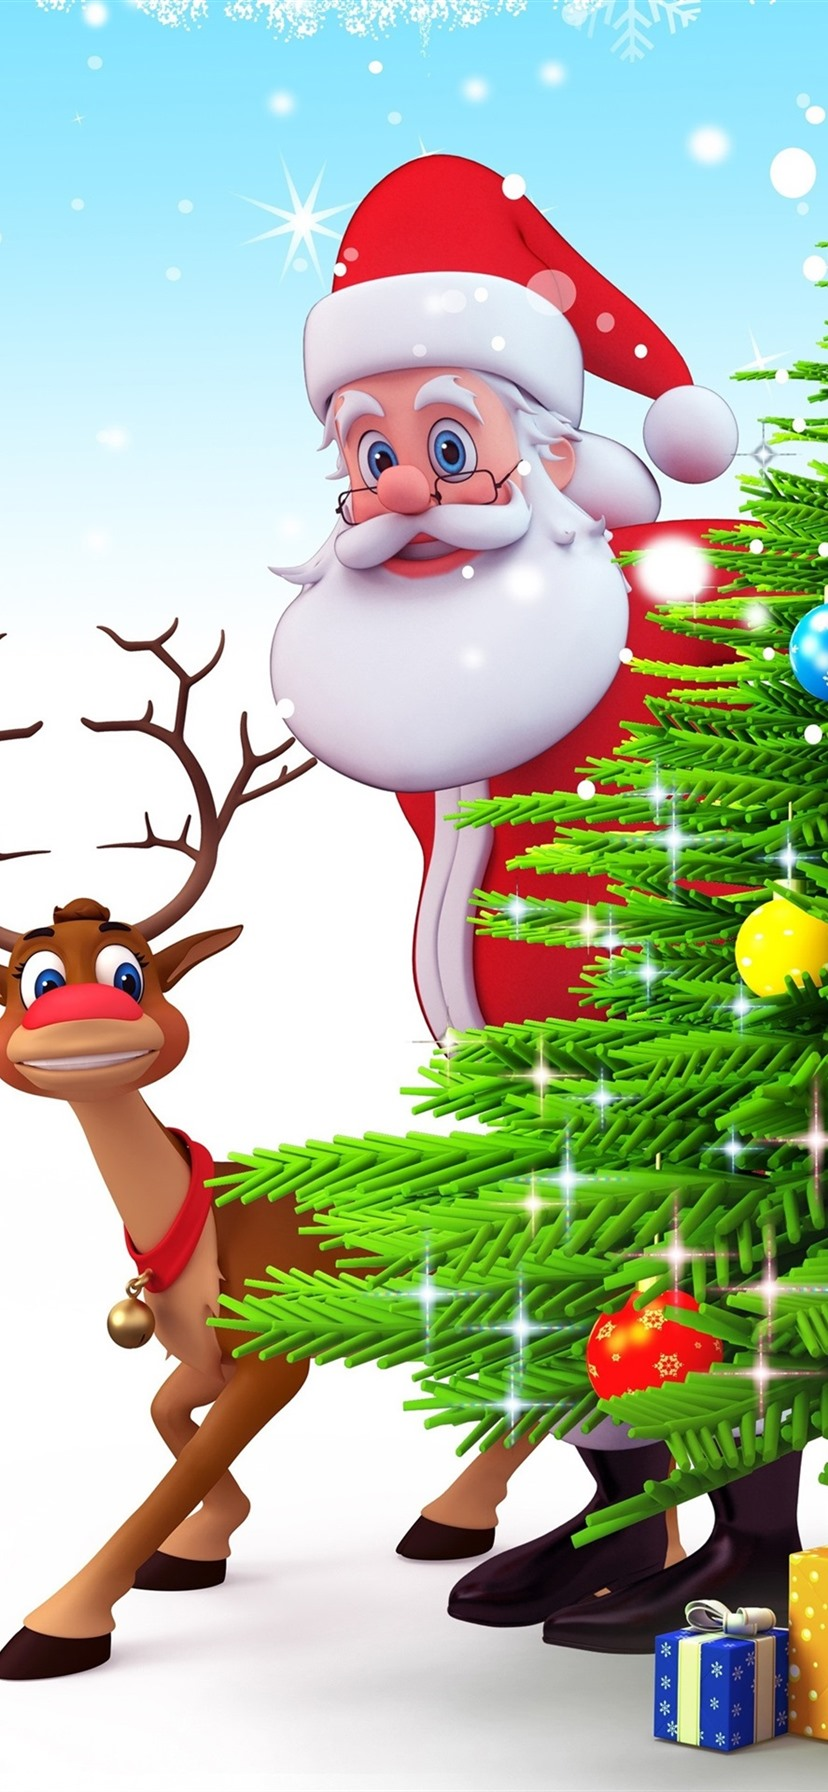 Santa Claus Christmas Tree Deer Gifts 3d Art Picture 1080x1920